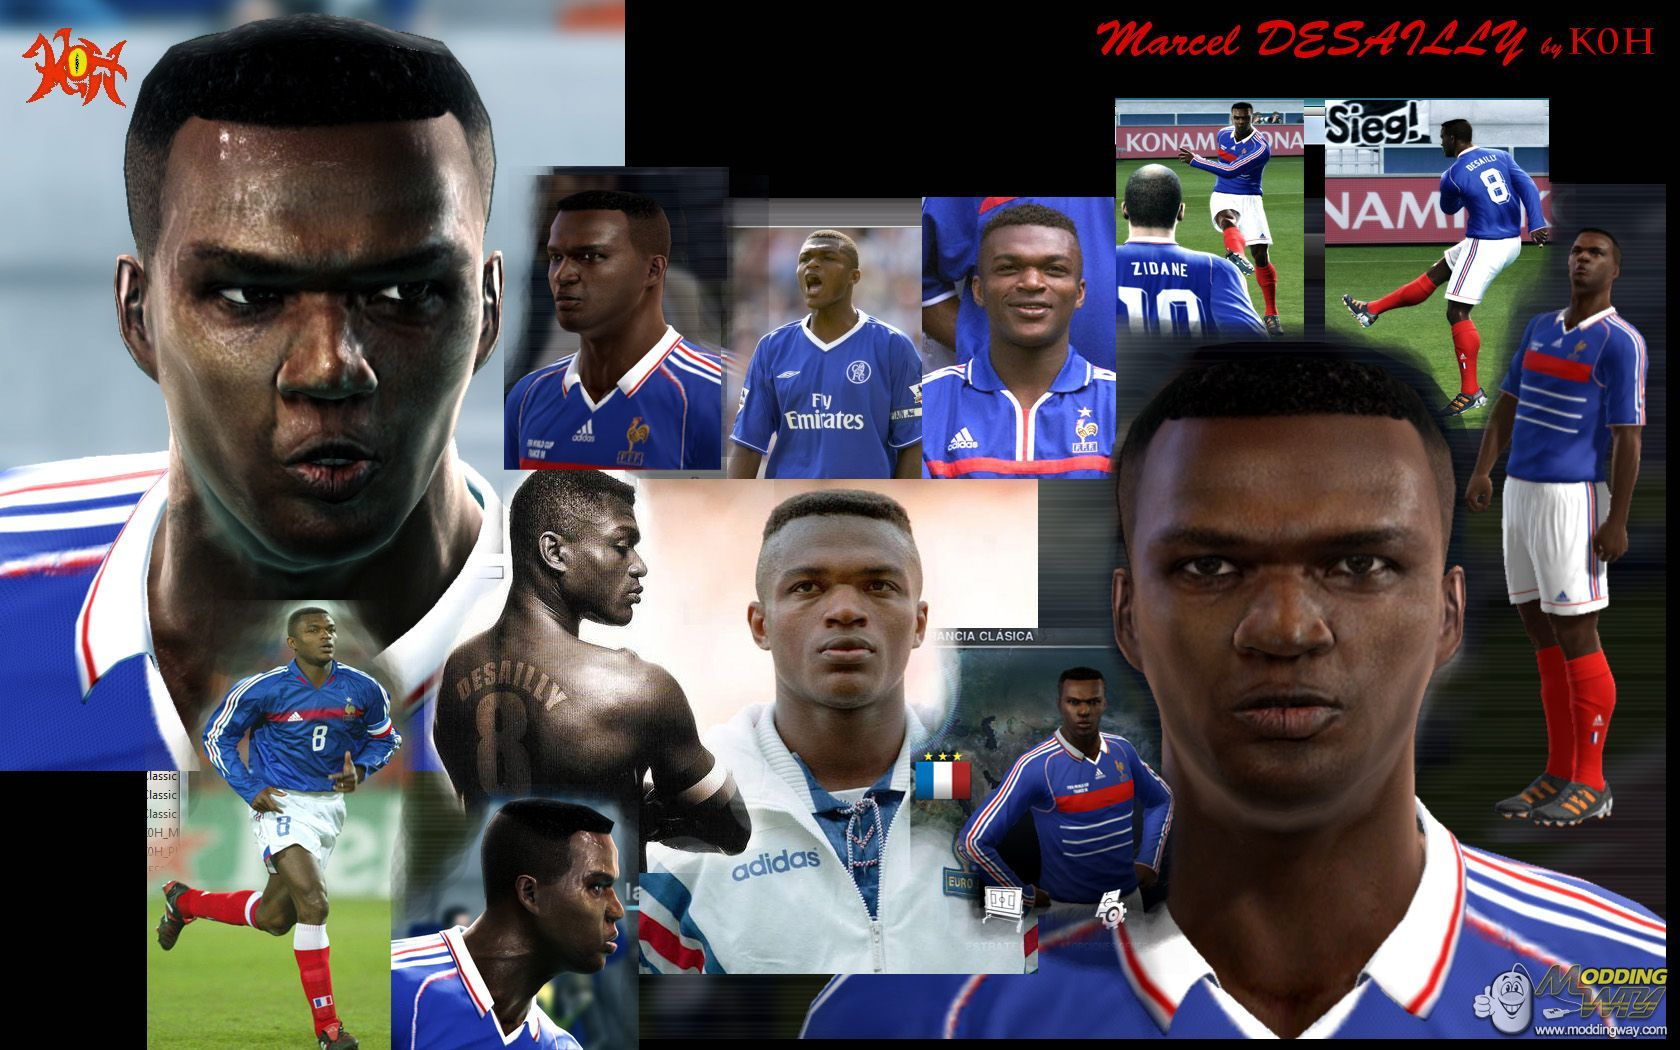 Marcel Desailly Face Pro Evolution Soccer 2012